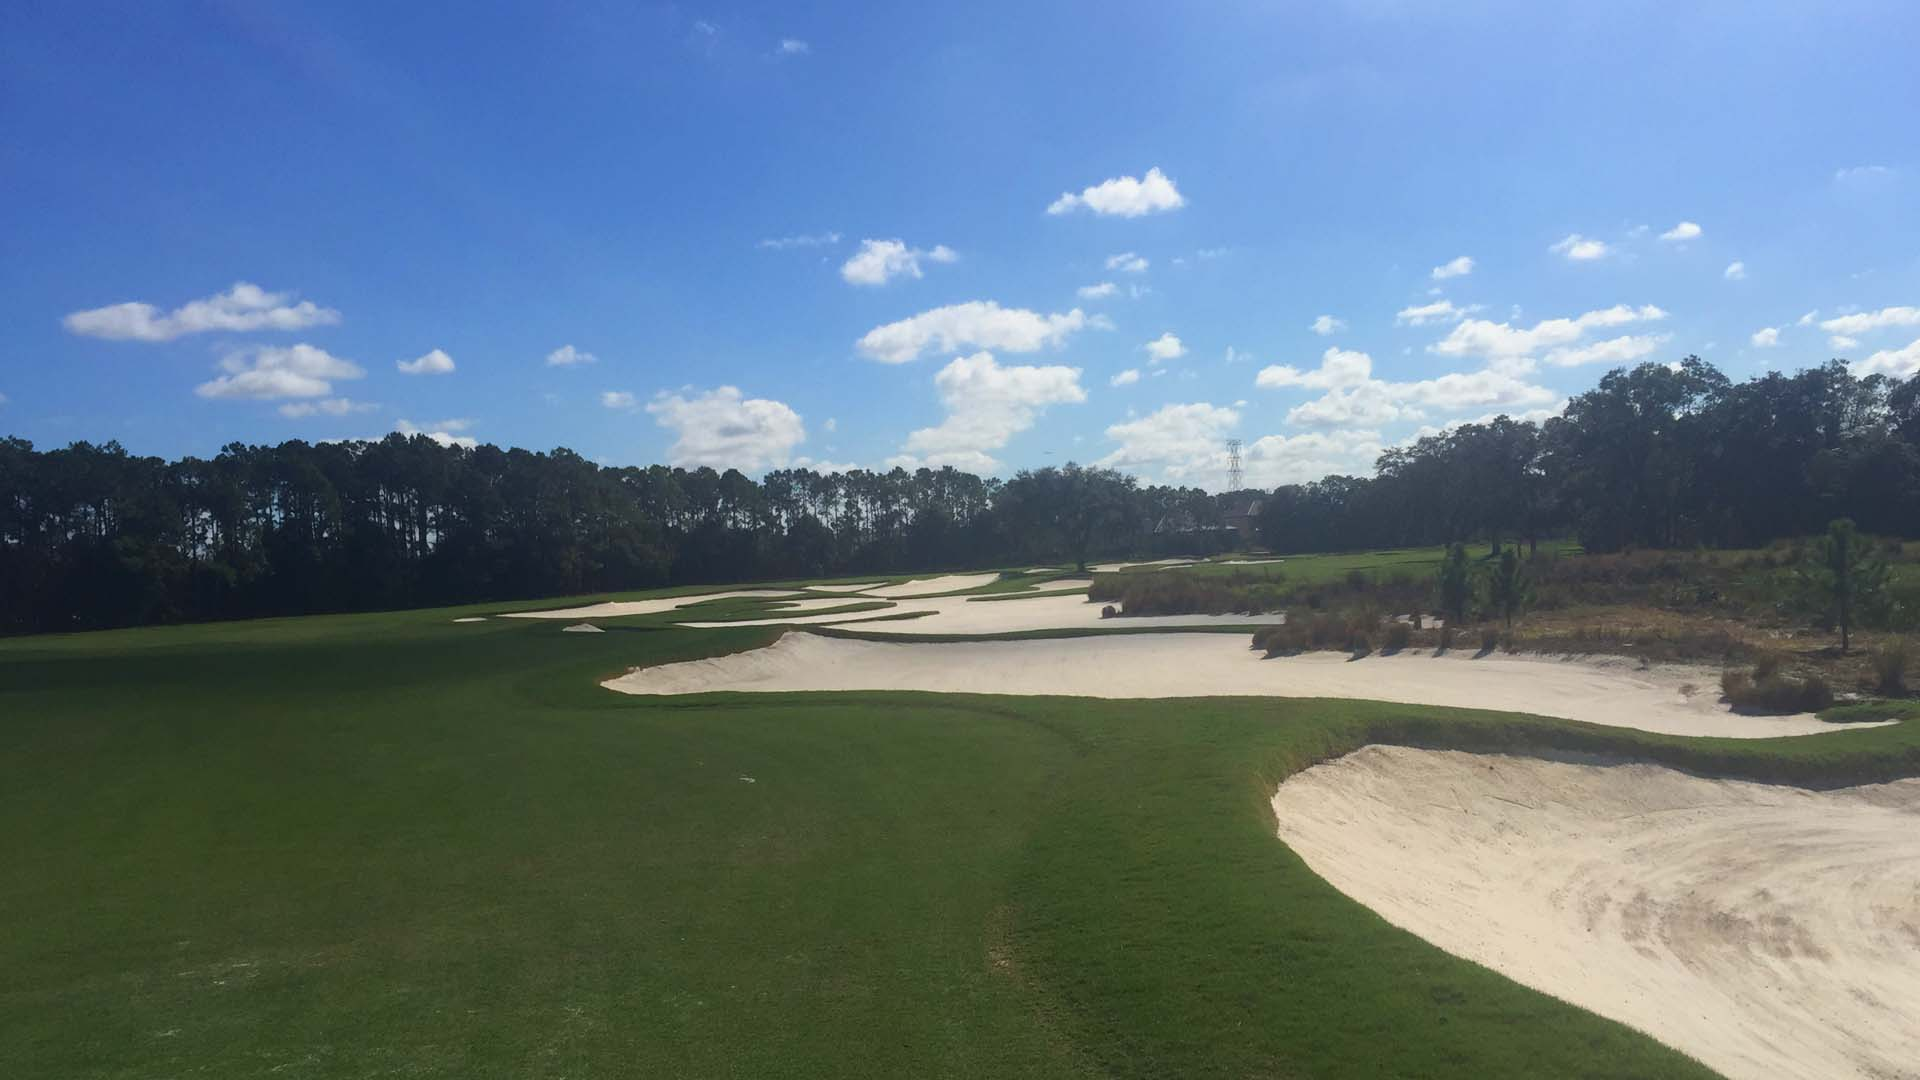 Photo of a sand bunker installed by Westscapes Golf Construction on Florida golf course.